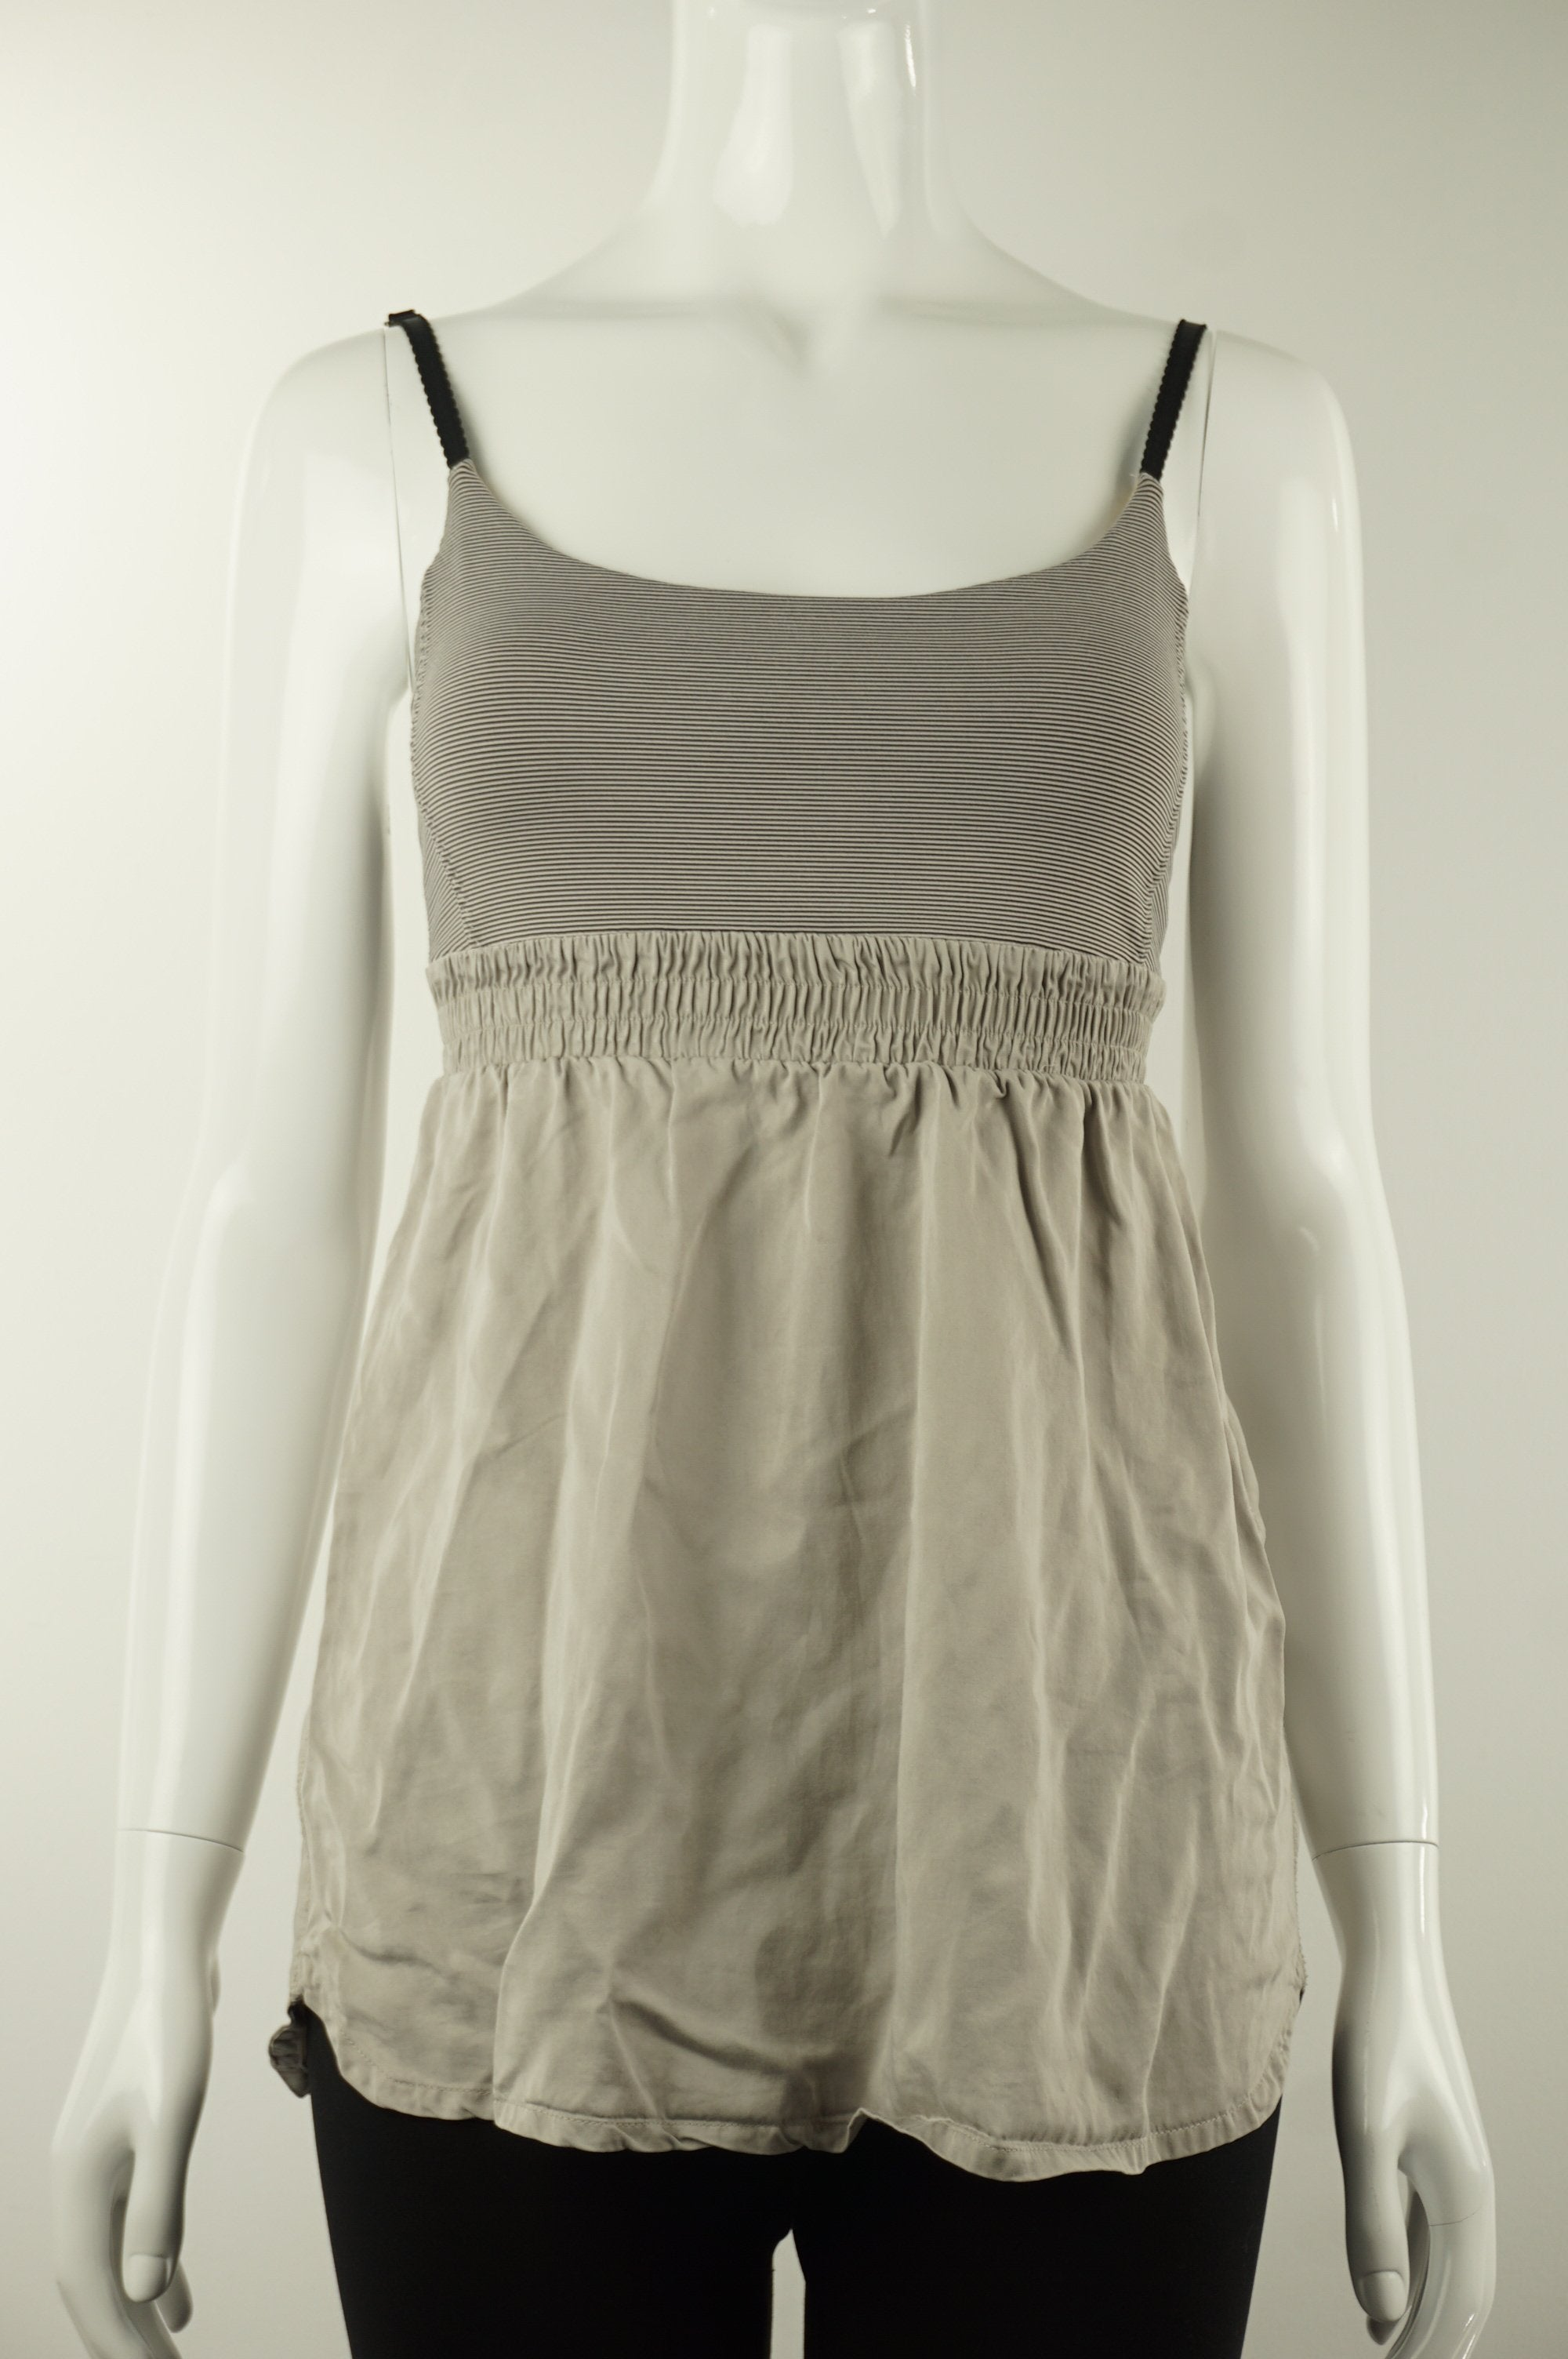 Lululemon Athletic Top, Women or girls top. Lululemon size 6. https://info.lululemon.com/help/size-chart, Grey, Yellow, Nylon, Lycra, and Spandex, women's Activewear, women's Grey, Yellow Activewear, Lululemon women's Activewear, Yoga, yoga pants, women's athletic wear, women's work out clothes, women's comfortable pants, fitness, fit